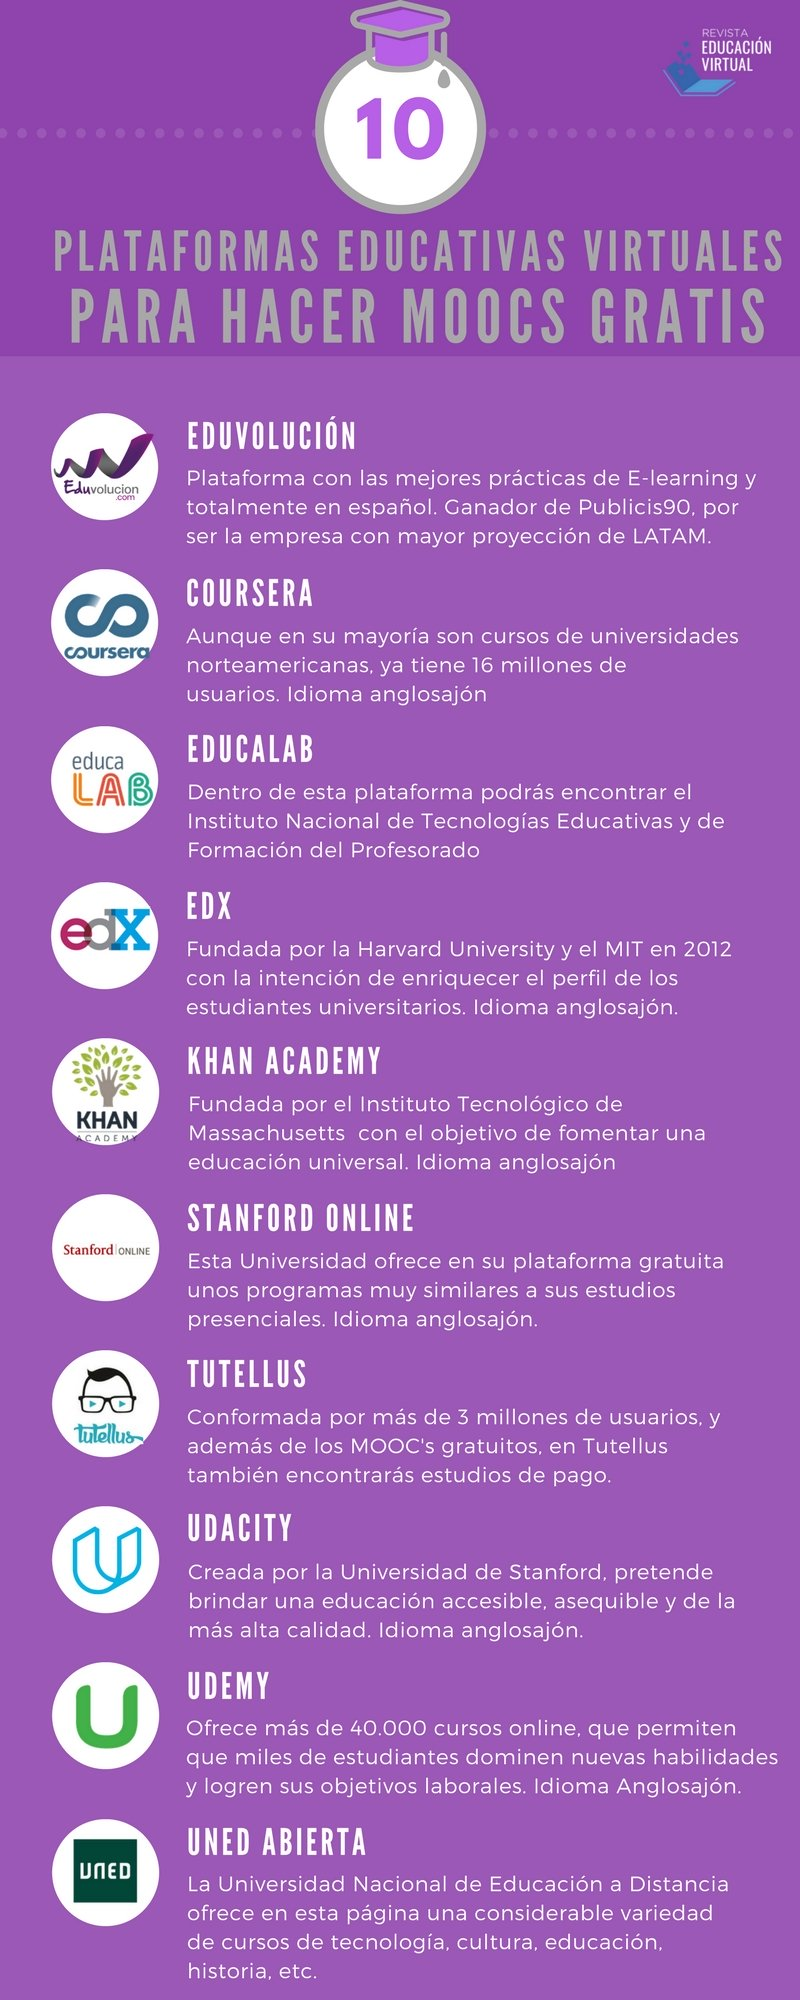 10 plataformas educativas virtuales